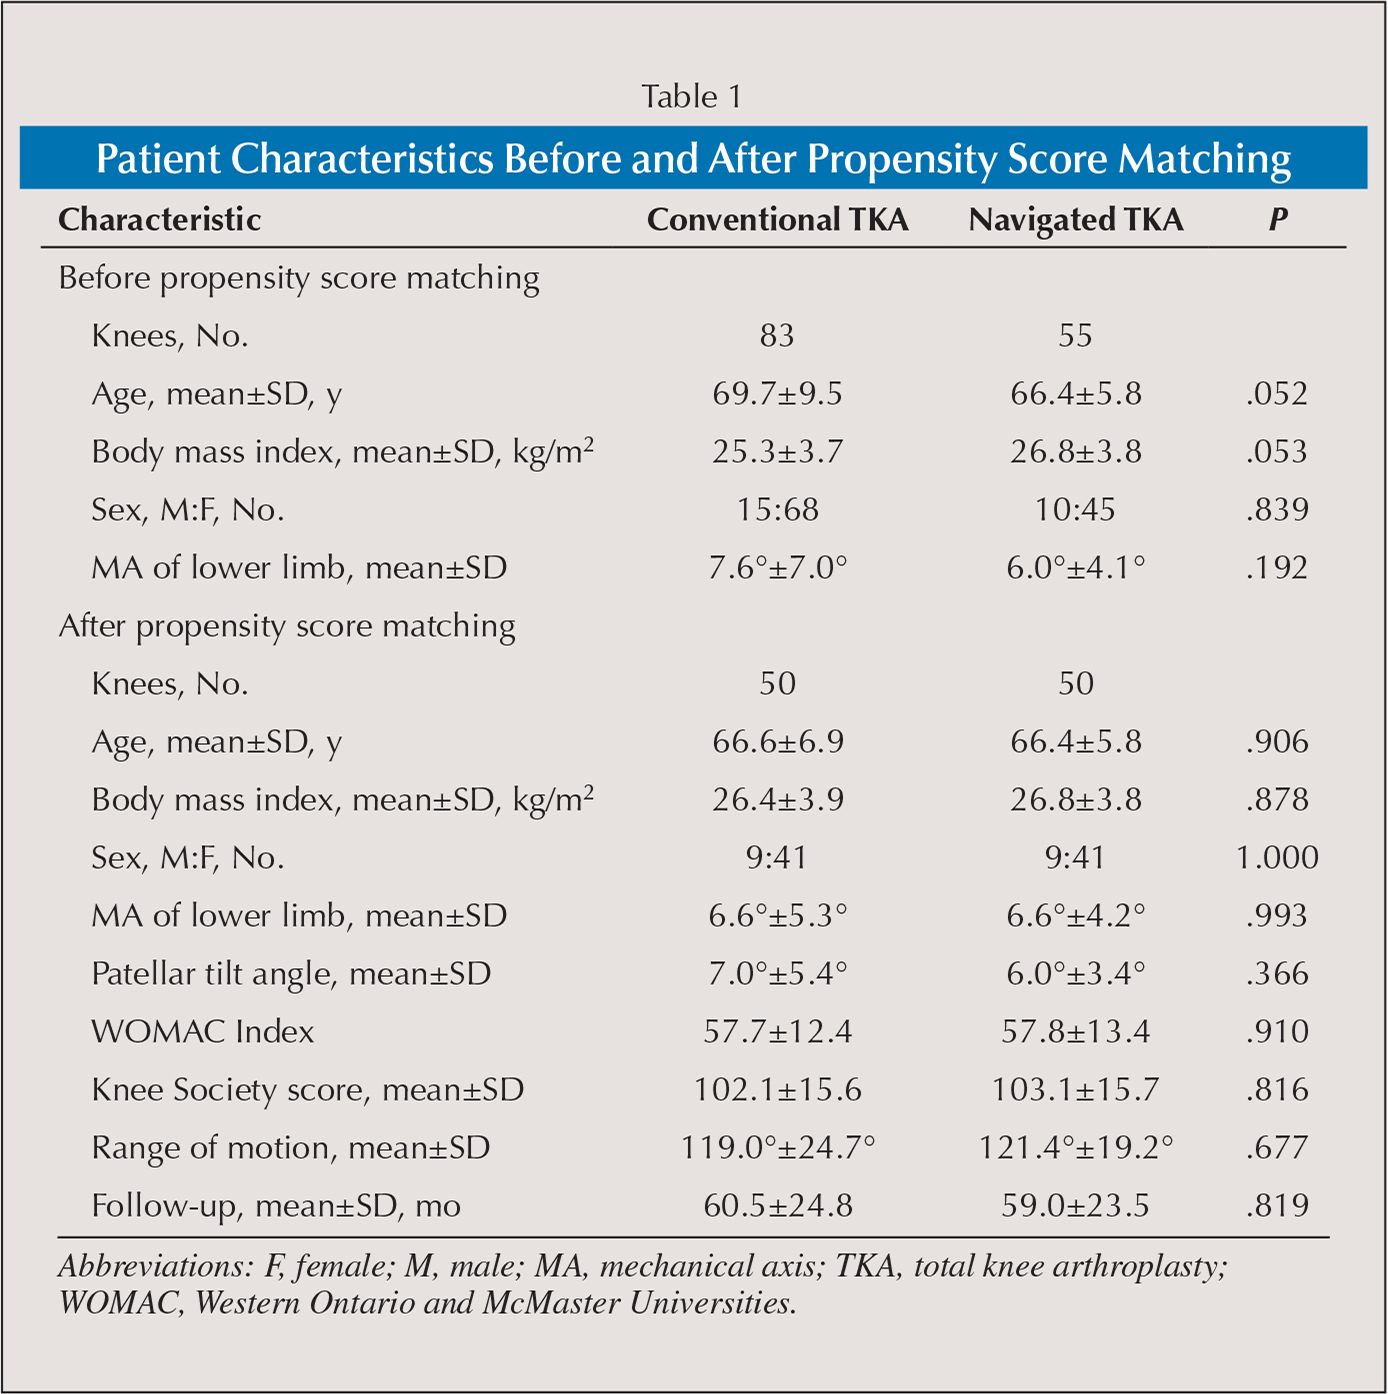 Patient Characteristics Before and After Propensity Score Matching